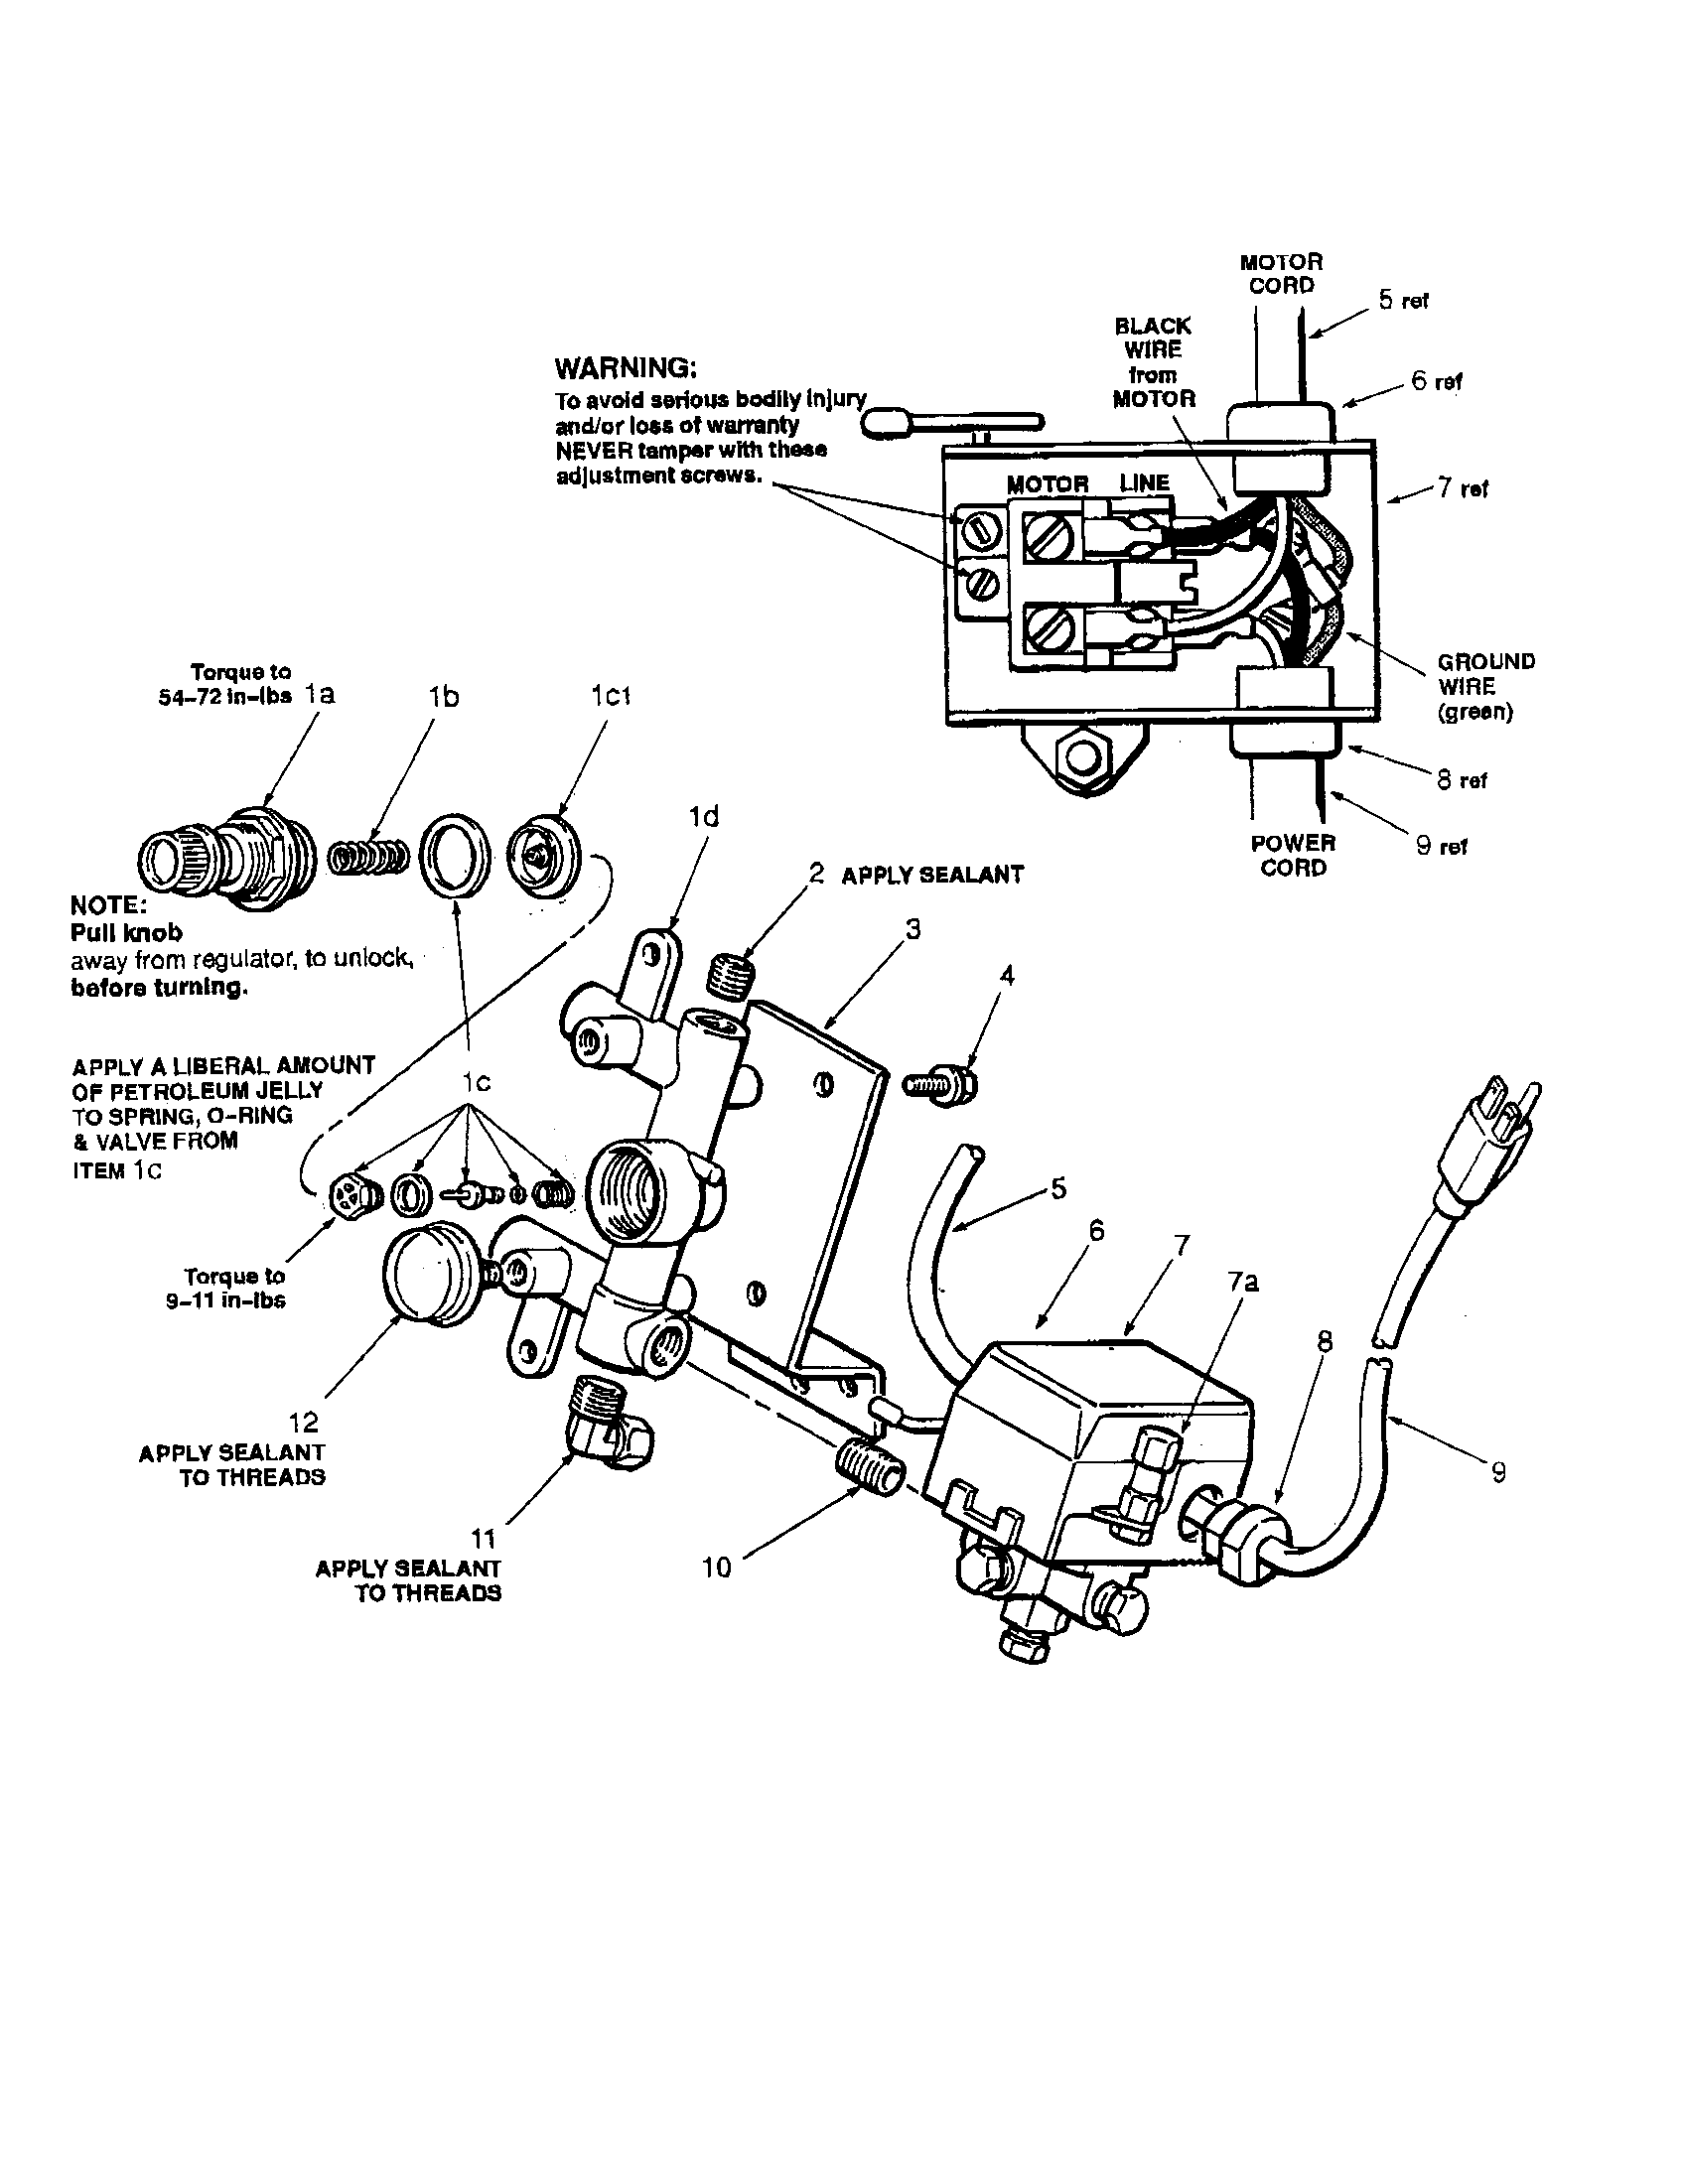 Wiring Diagram For Sanborn Air Compressor